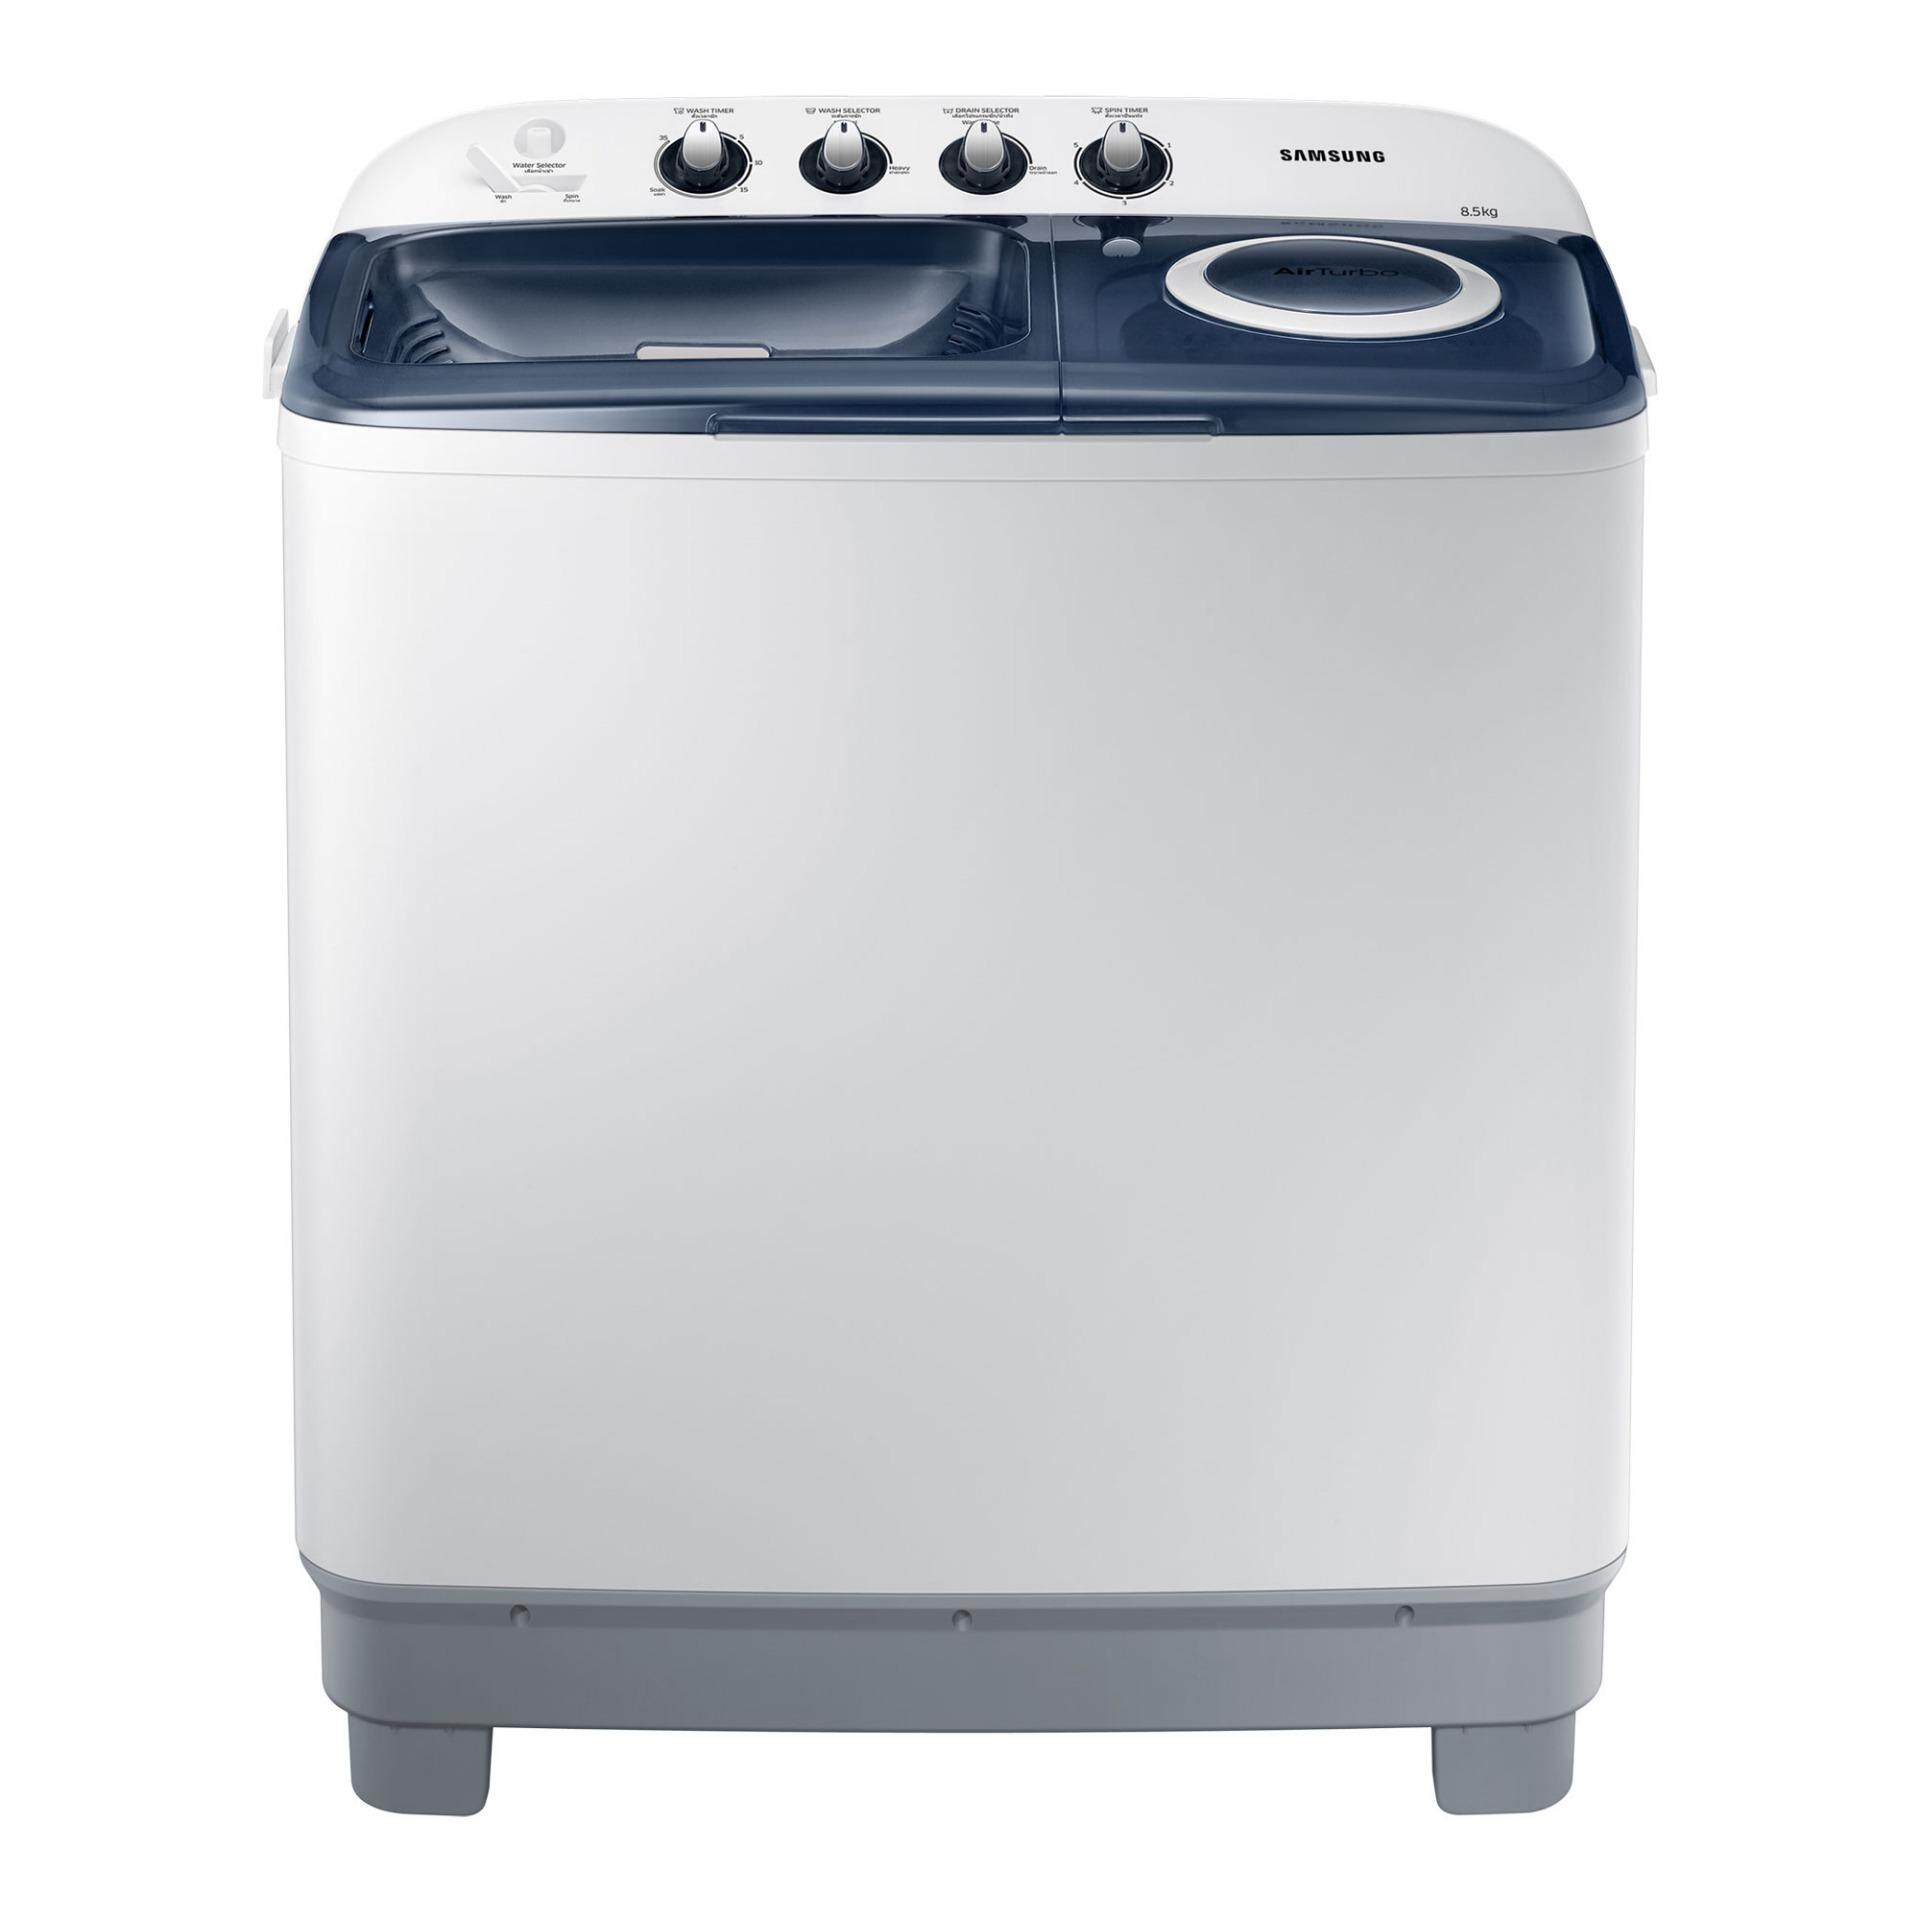 Samsung Front Loading Washer Ww75k5210yw 2 85 Kg Wt85h3210mb St